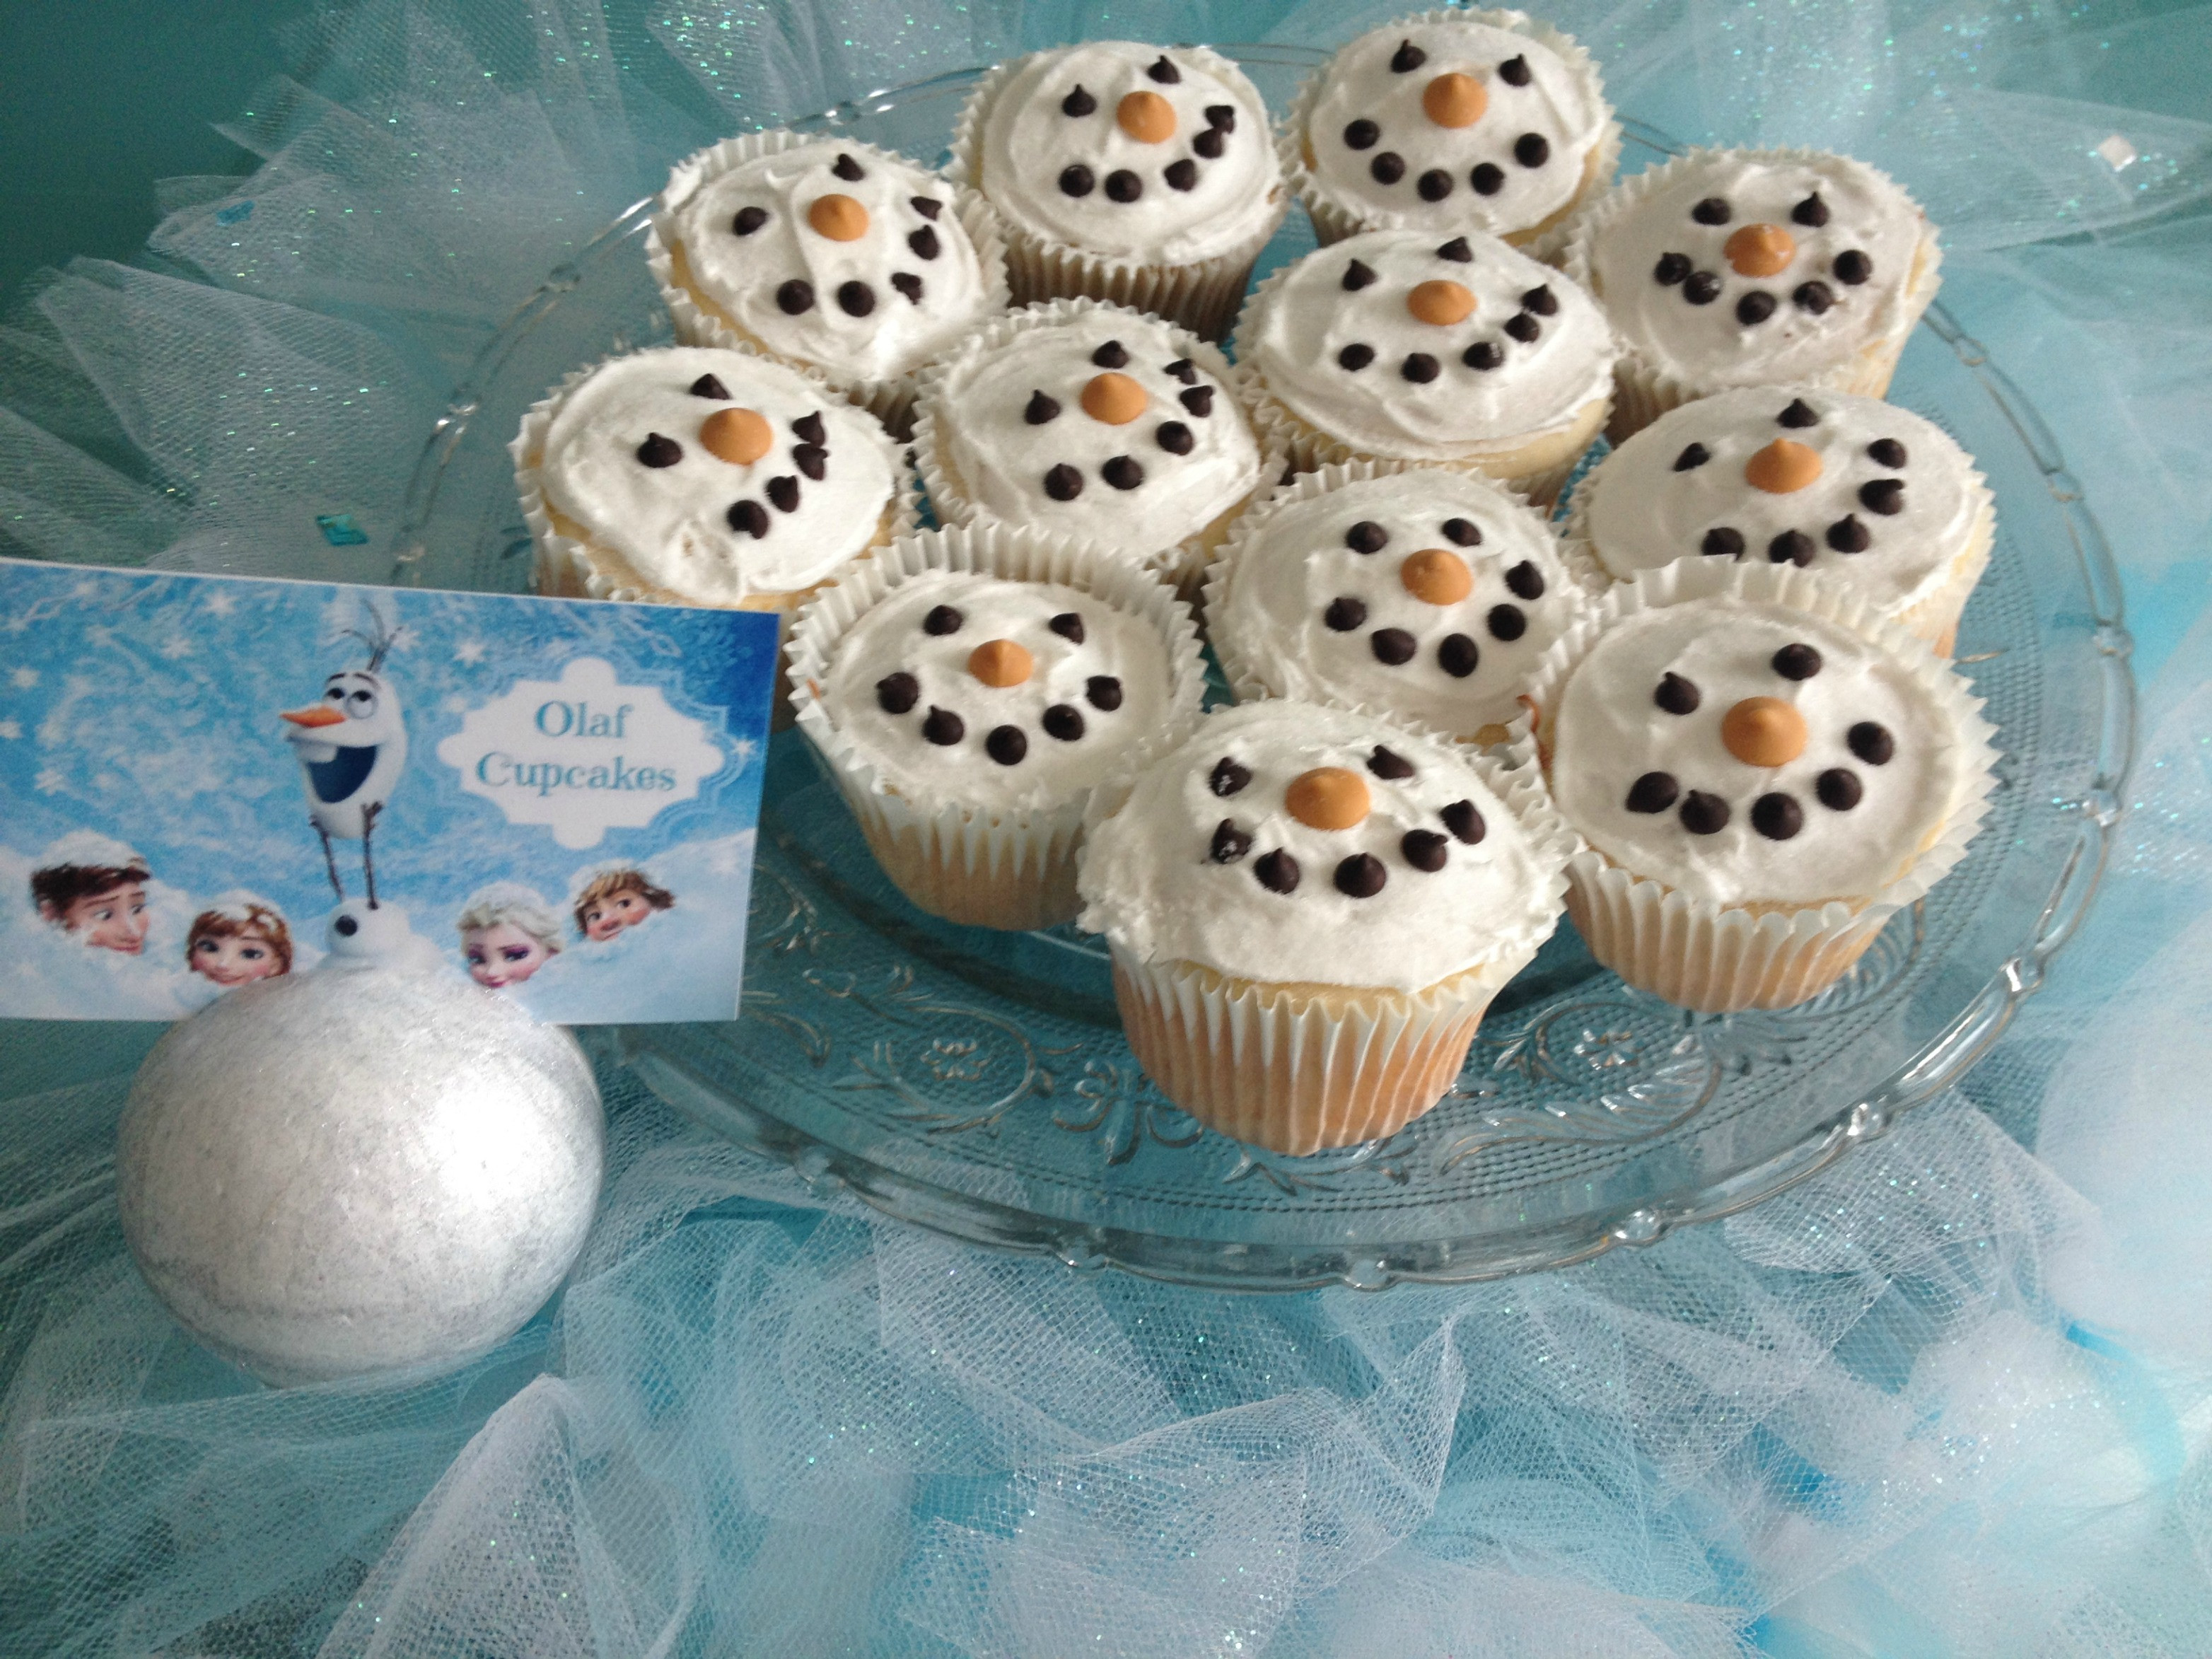 Olaf Cupcakes Cake  How To Make The Easiest Disney Frozen Olaf Cupcakes